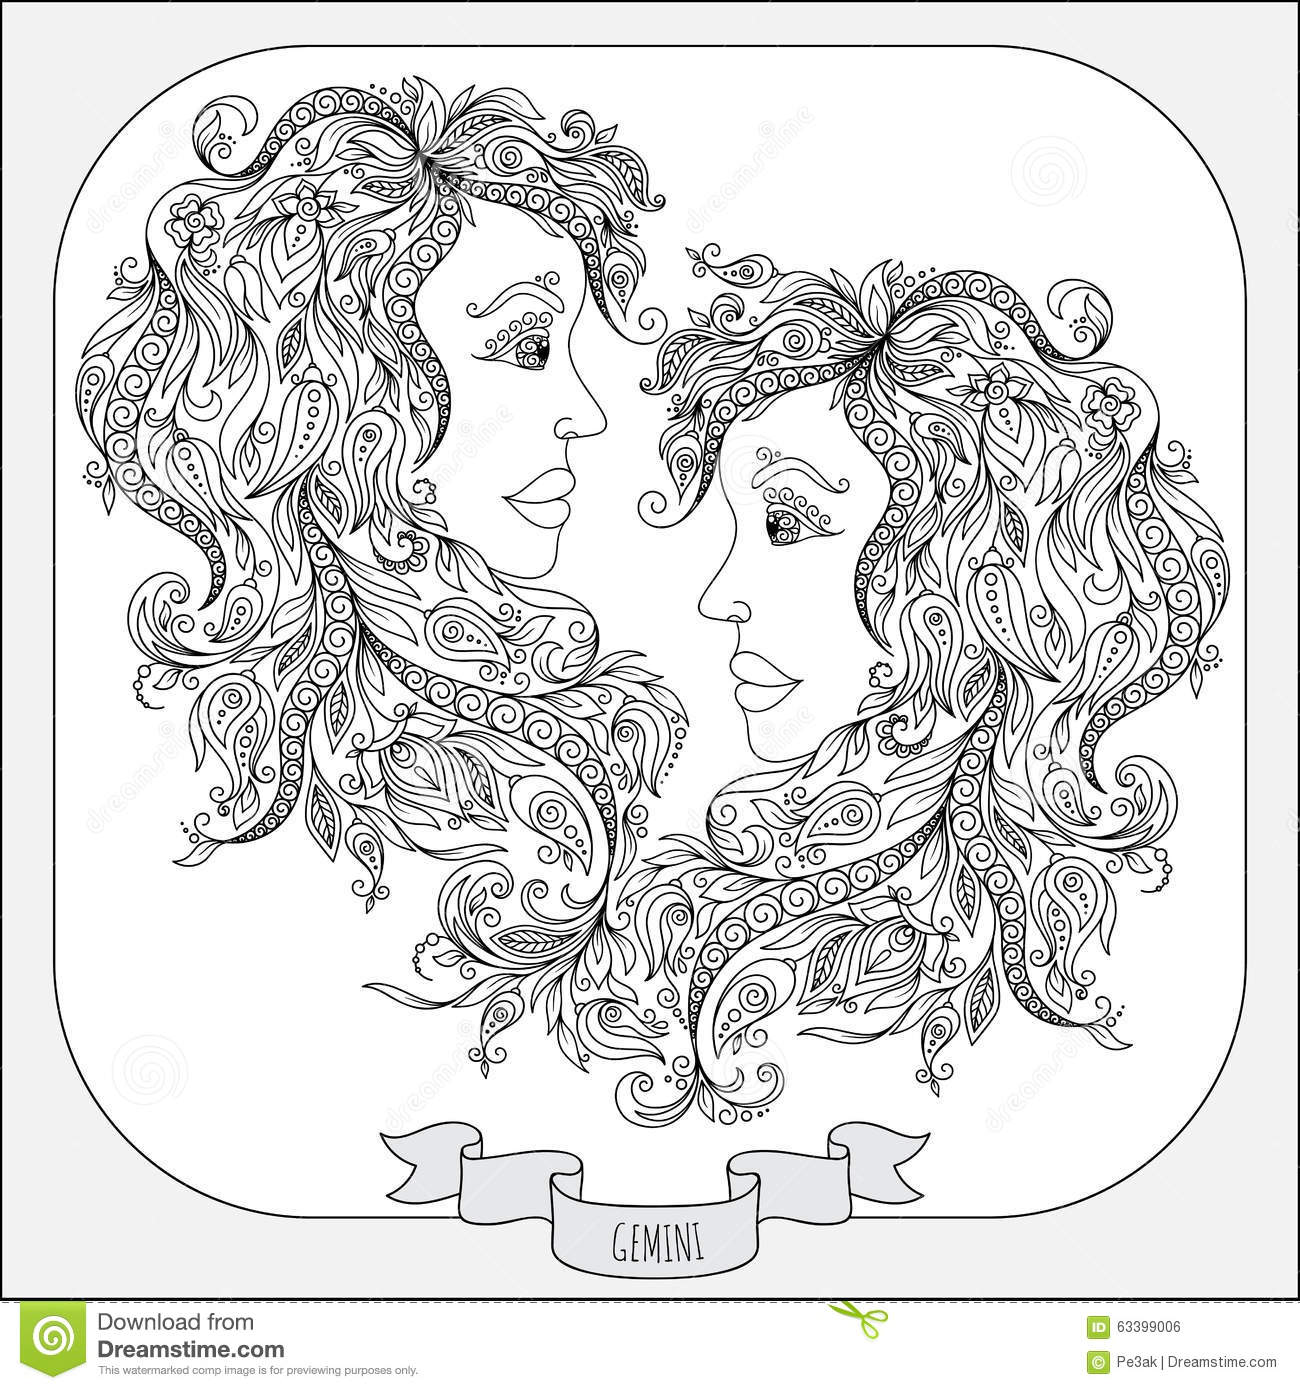 Image Result For Free Coloring Pages Gemini